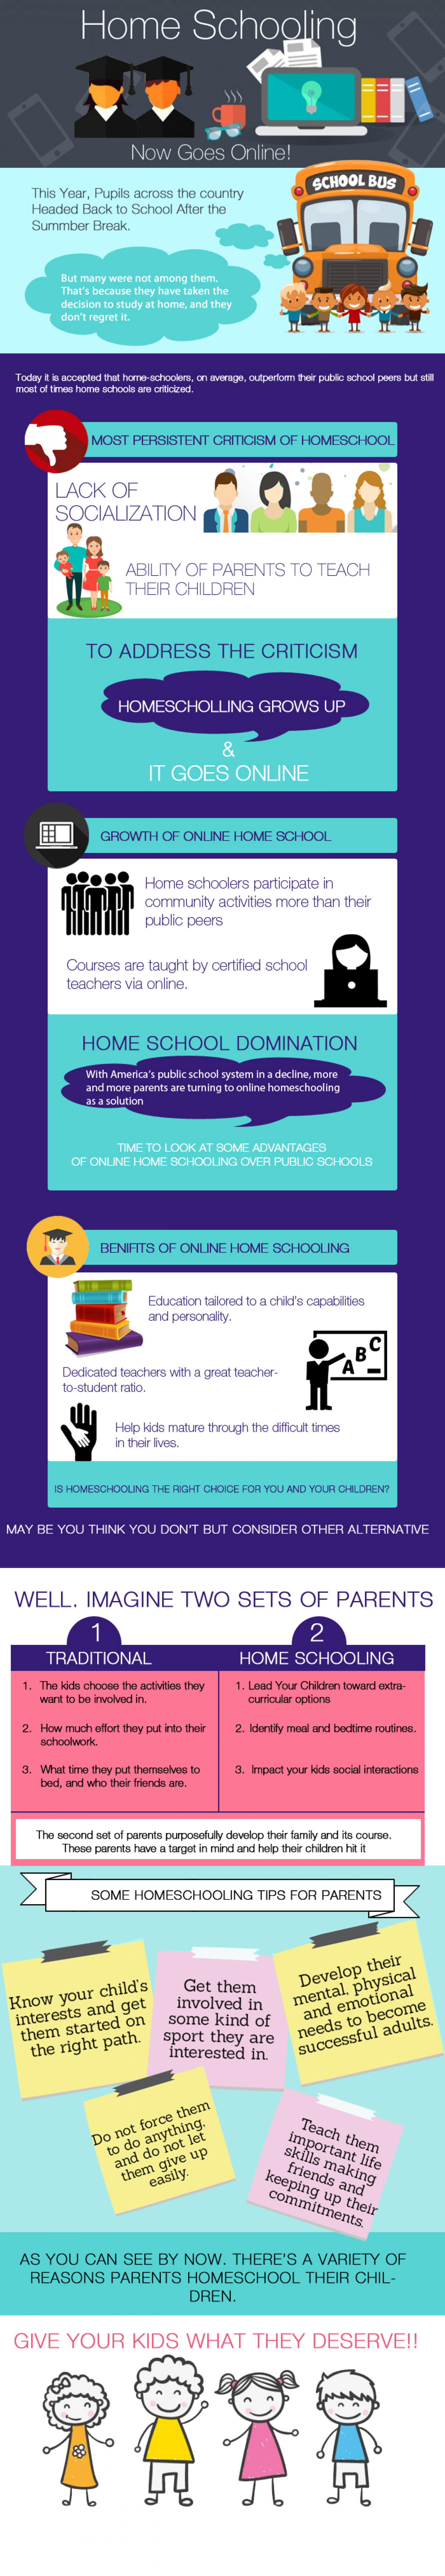 Struggling in School? Home Schooling may be the Answer! Infographic